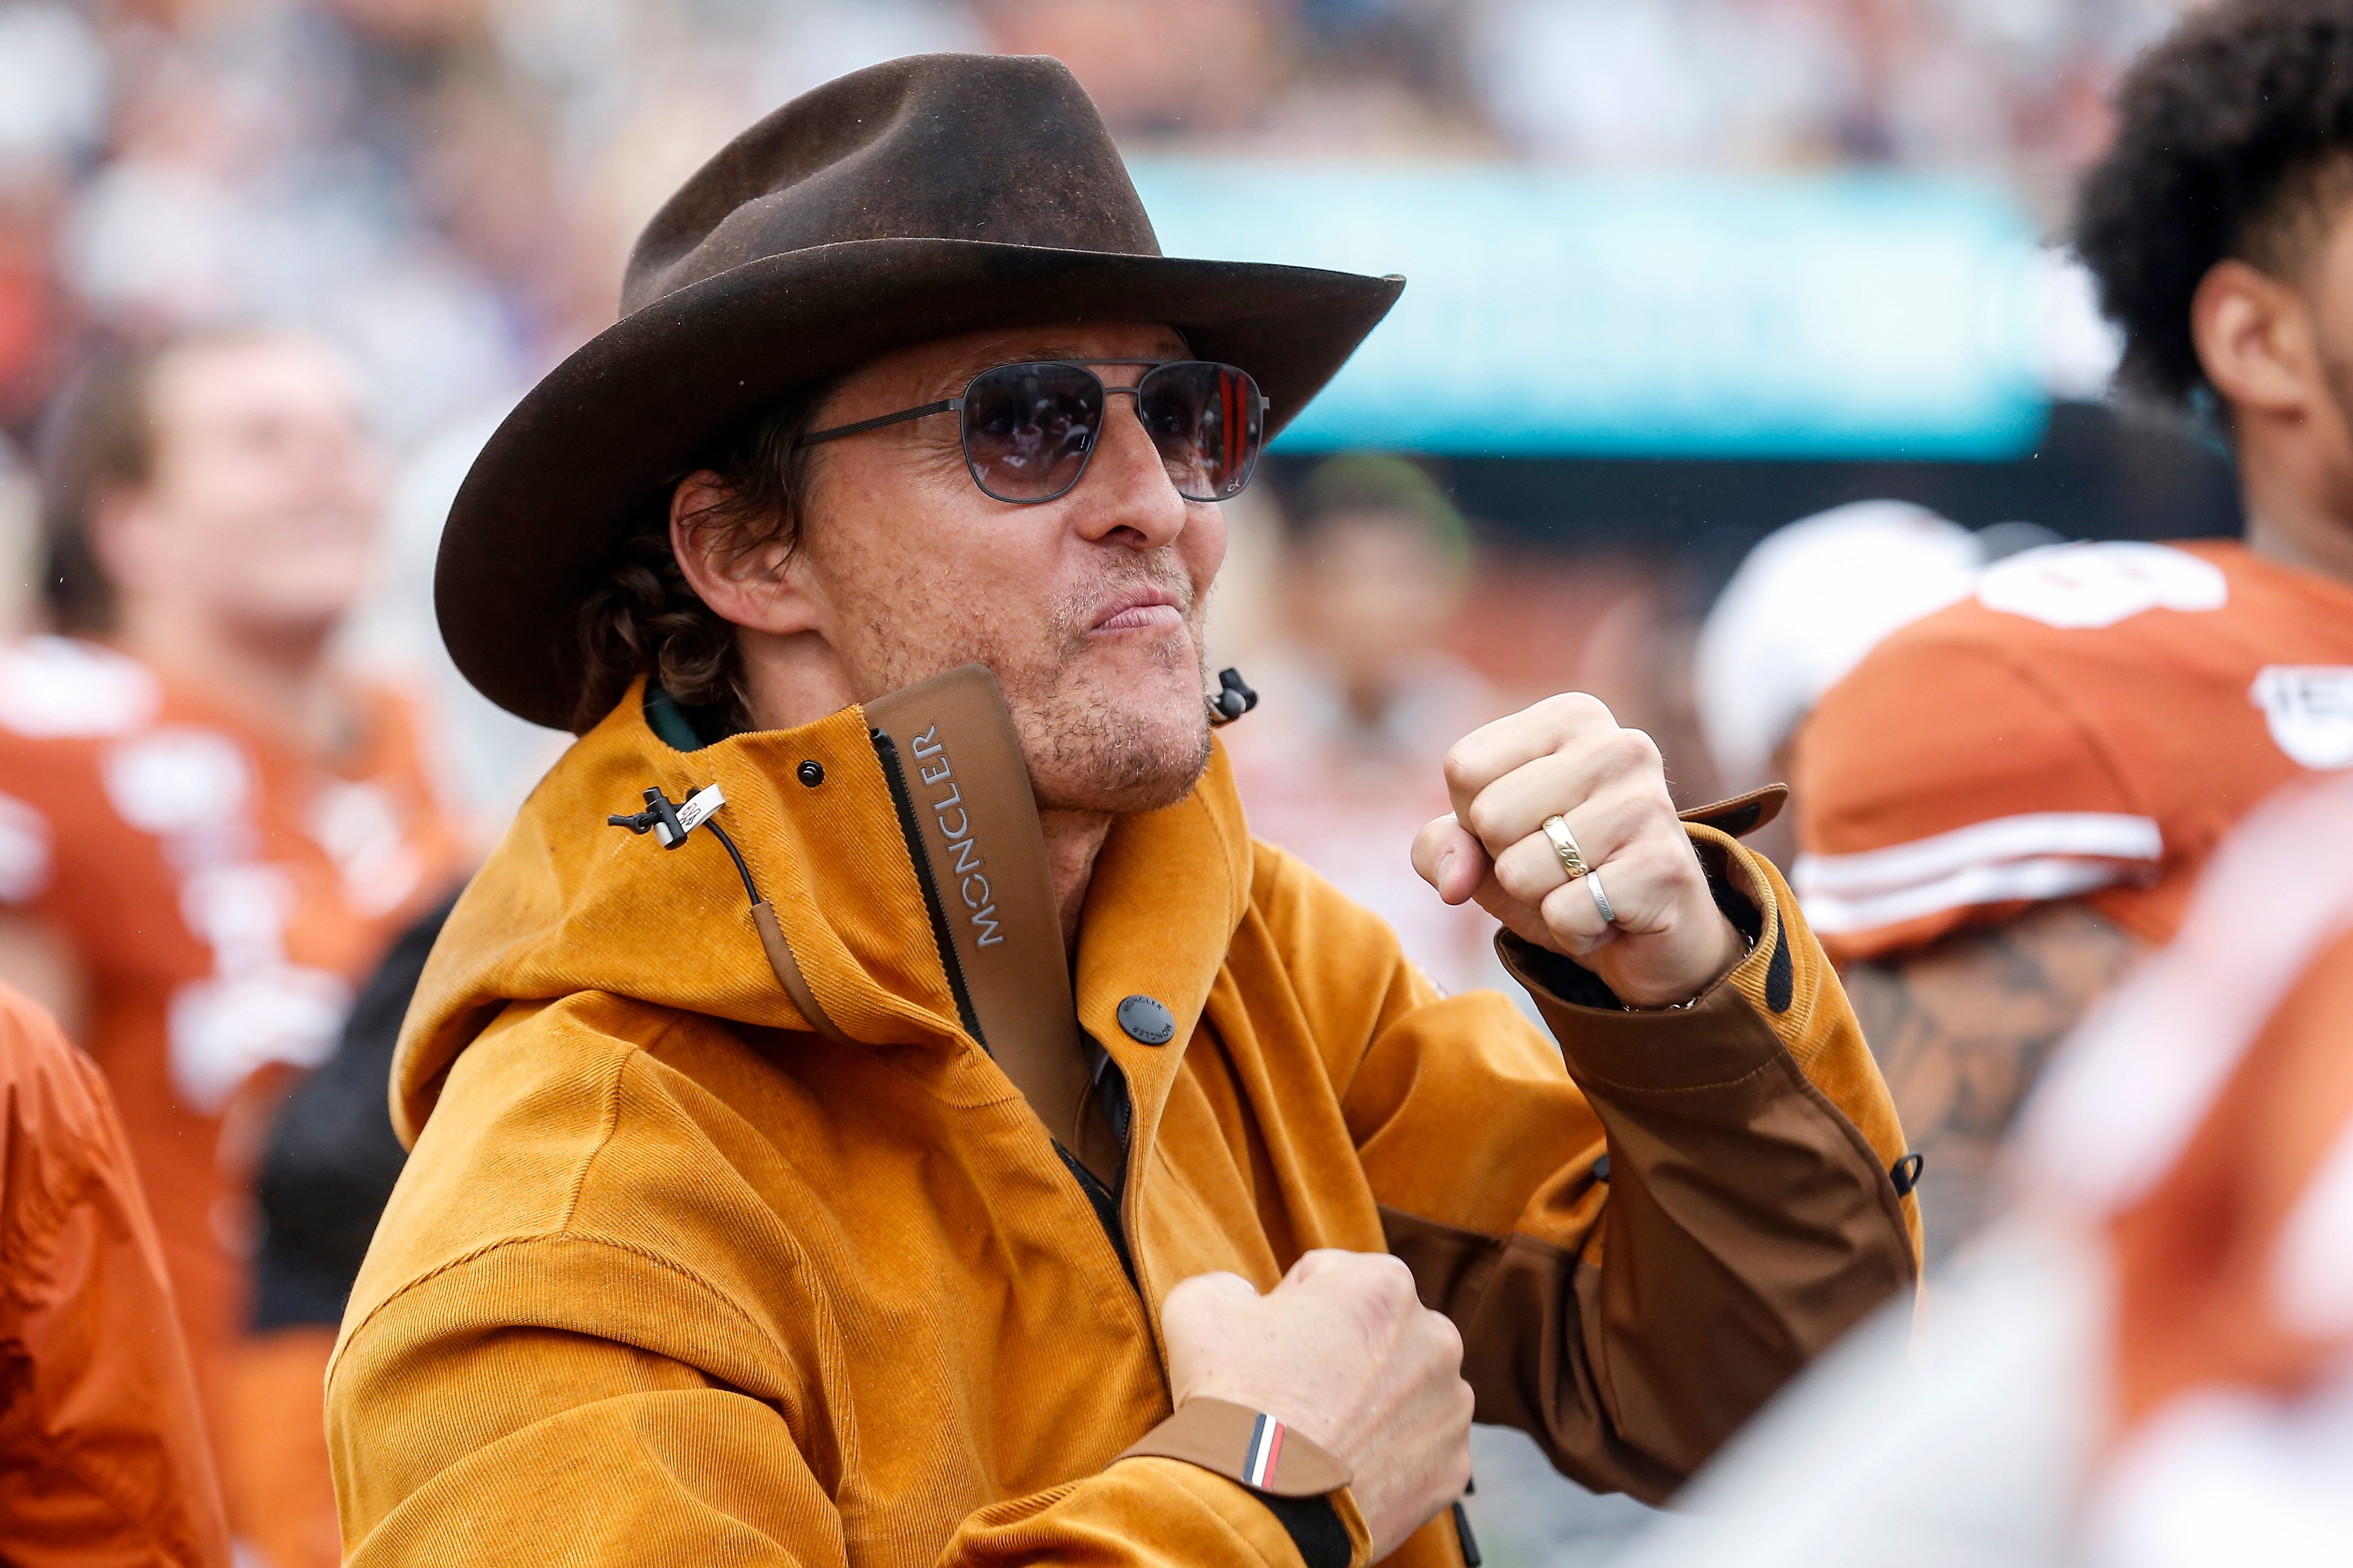 Is Matthew McConaughey running for governor of Texas? Maybe. What we know about his interest in politics